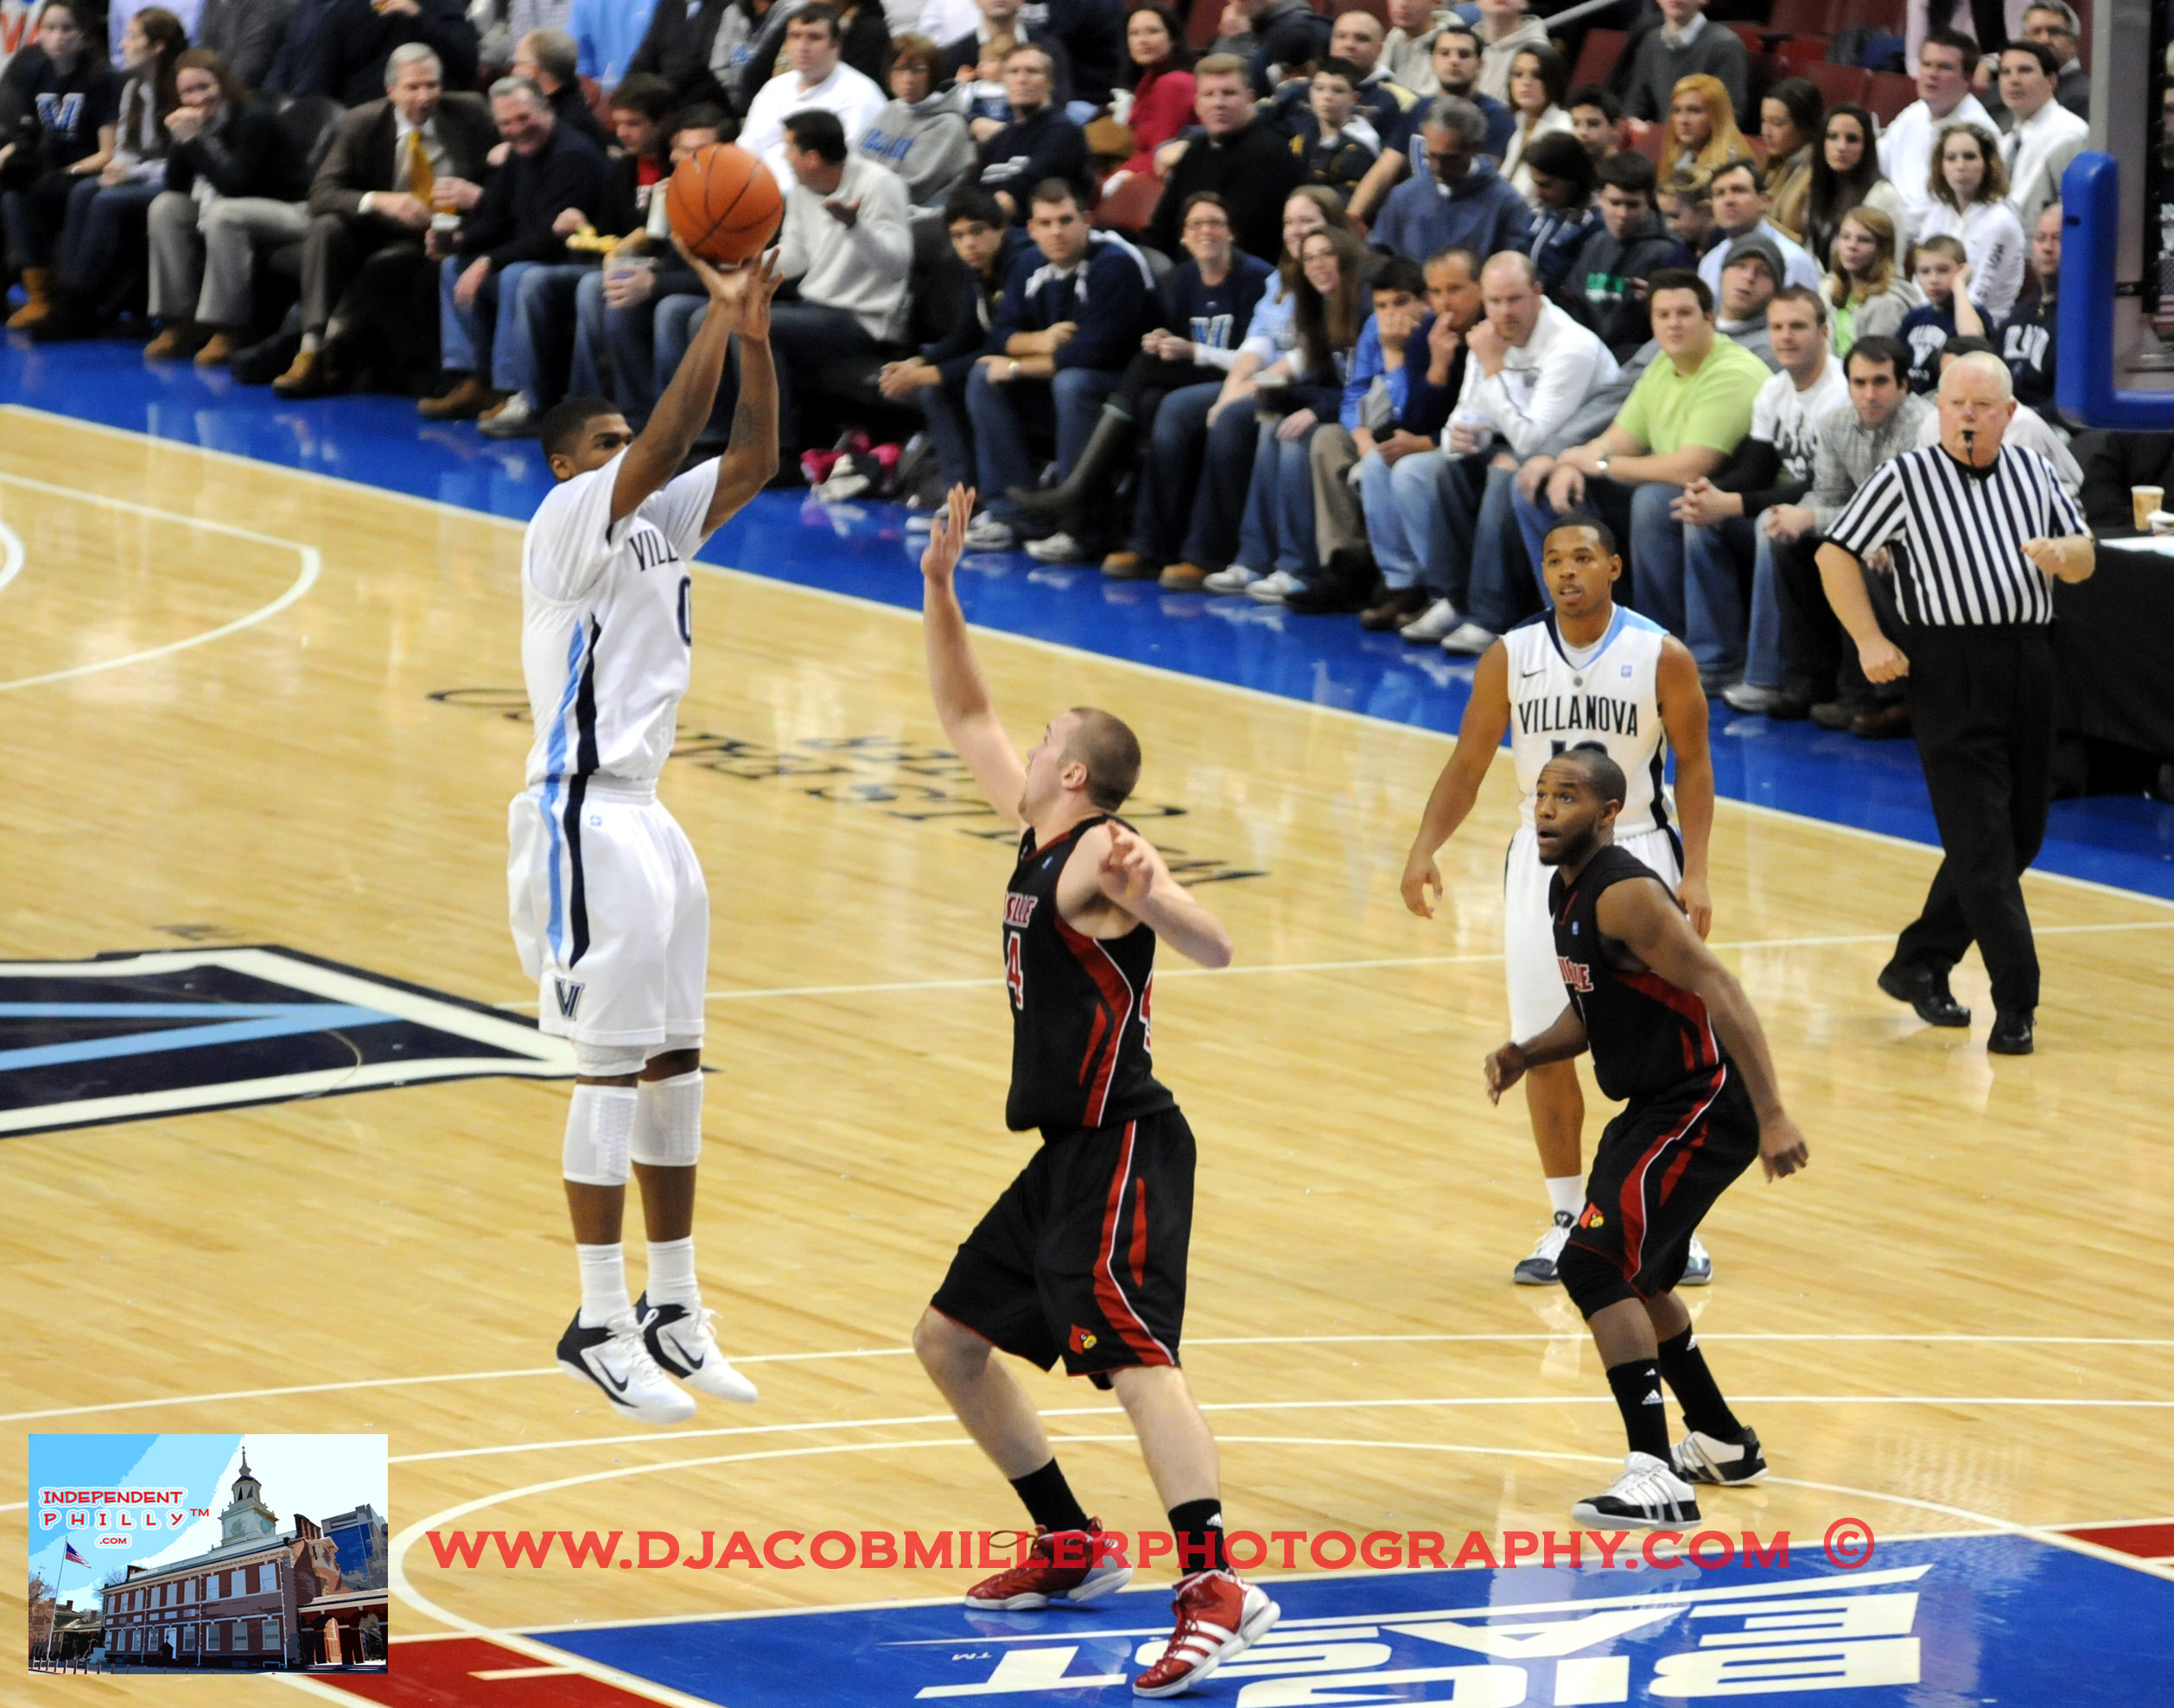 A center's role in basketball: October 2011